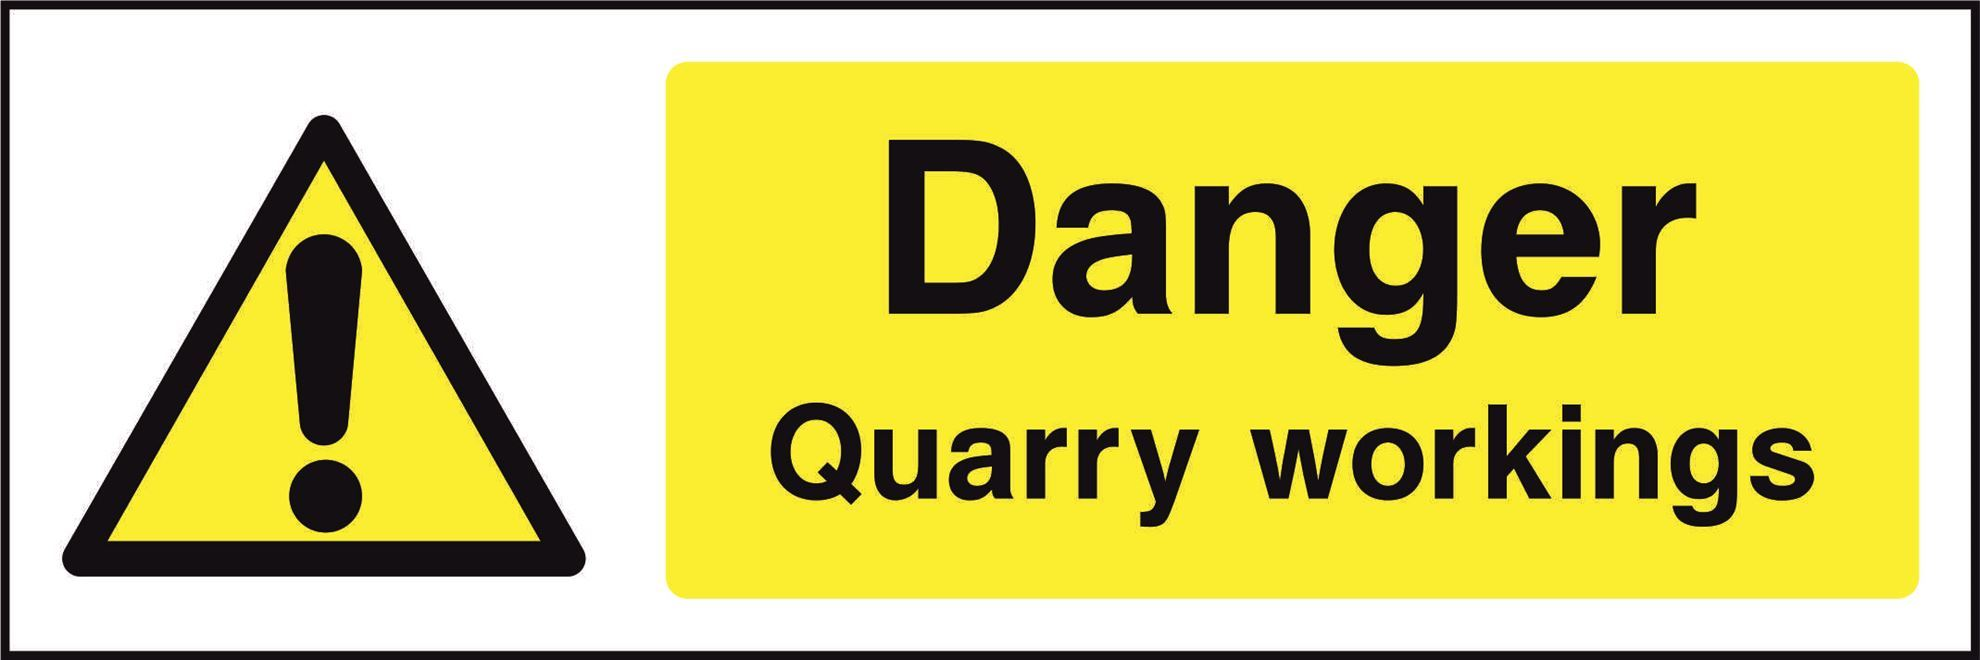 Danger Quarry workings